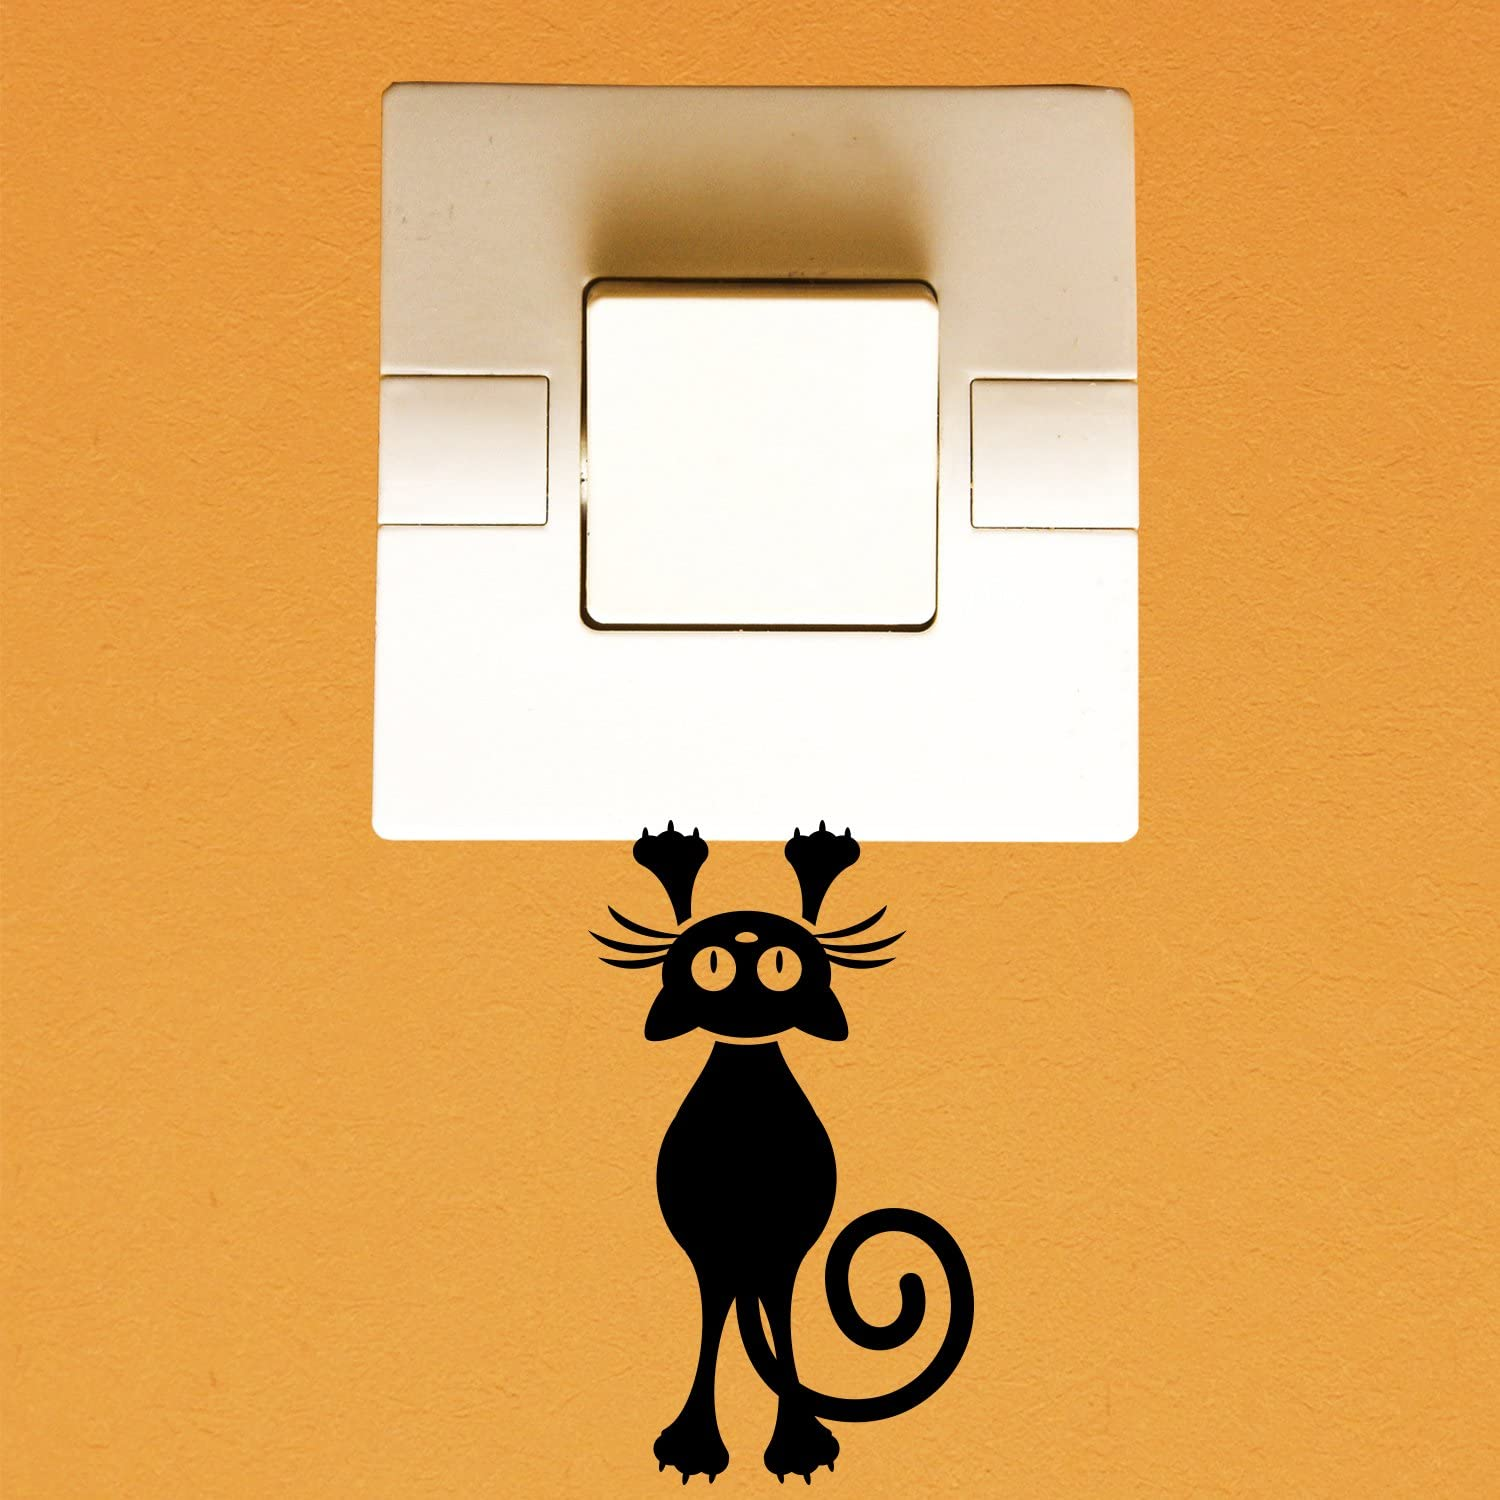 """Vinyl Wall Art Decal - Hanging Cat - 4"""" x 2.5"""" - Cute Animal Decor for Light Switch Window Mirror Luggage Car Bumper Laptop Computer Peel and Stick Skin Sticker Designs"""